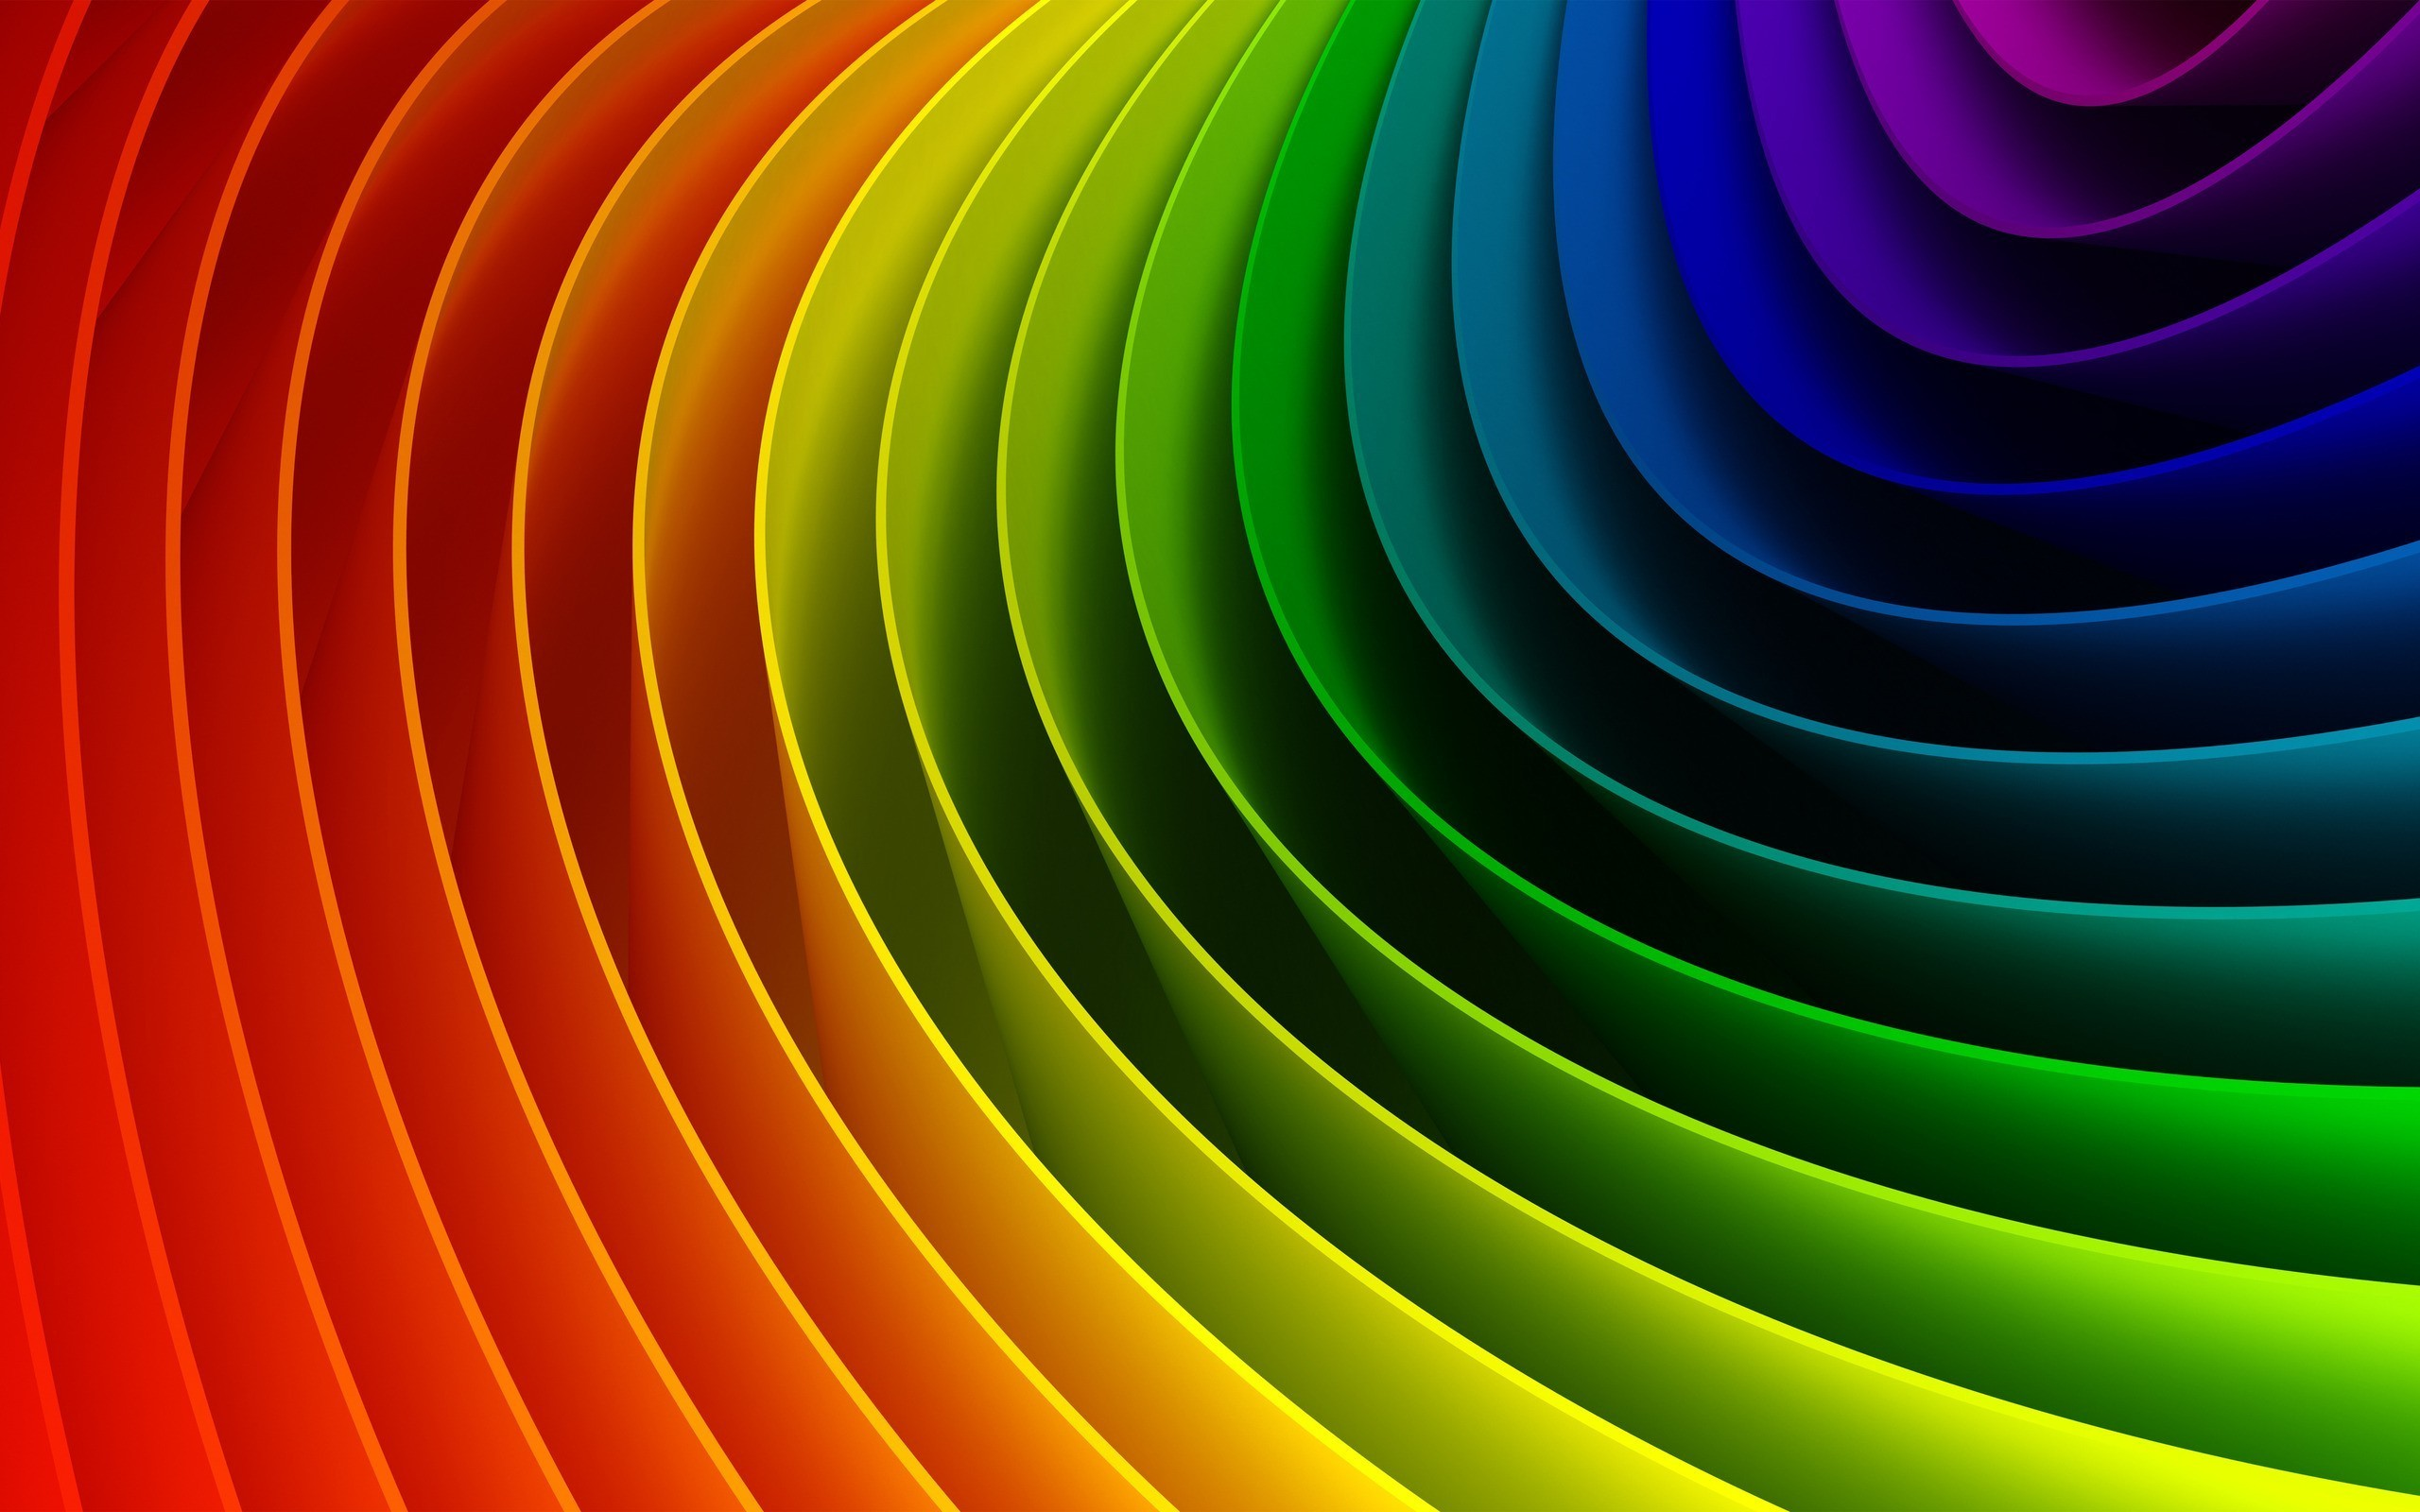 2560x1600px Colorful 432.71 KB #211406